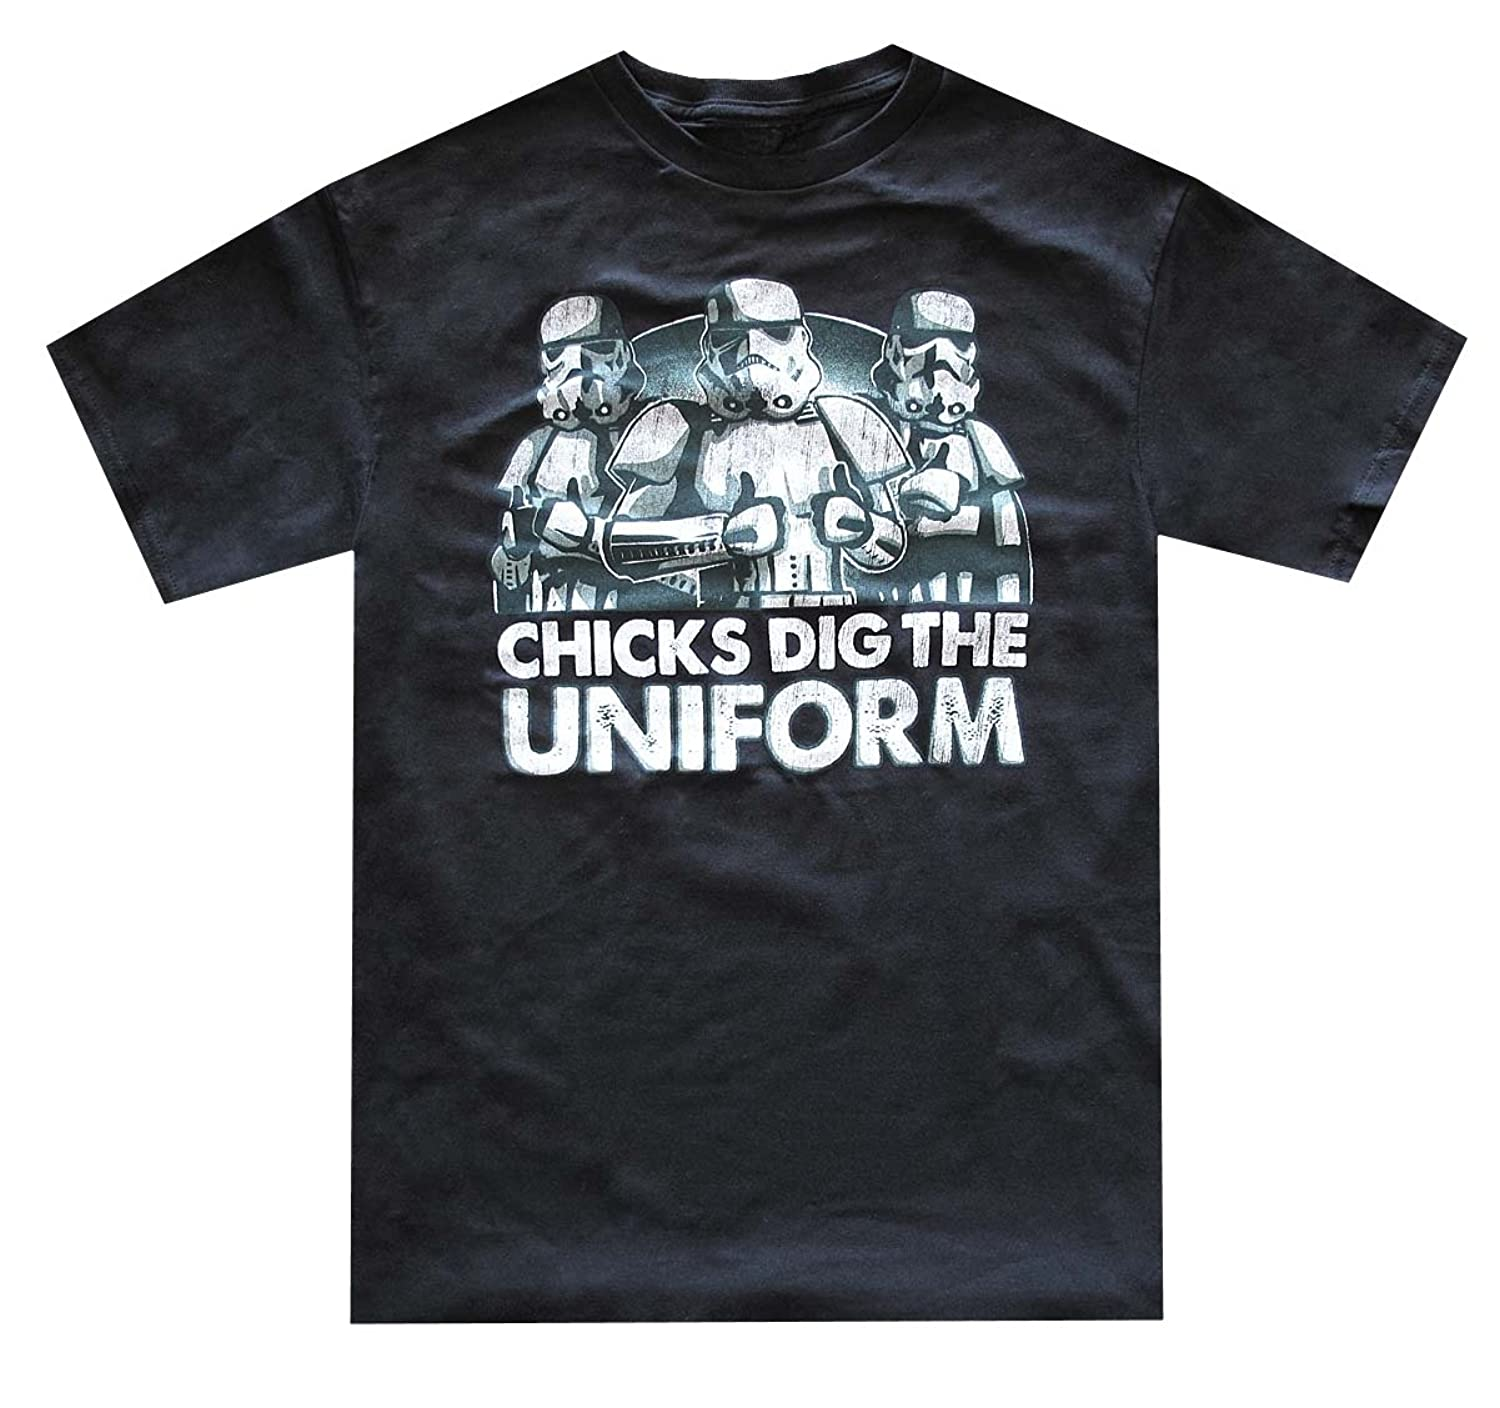 Star Wars Men's Stormtrooper Chicks Dig Uniform T-Shirt (X-Large, Black)